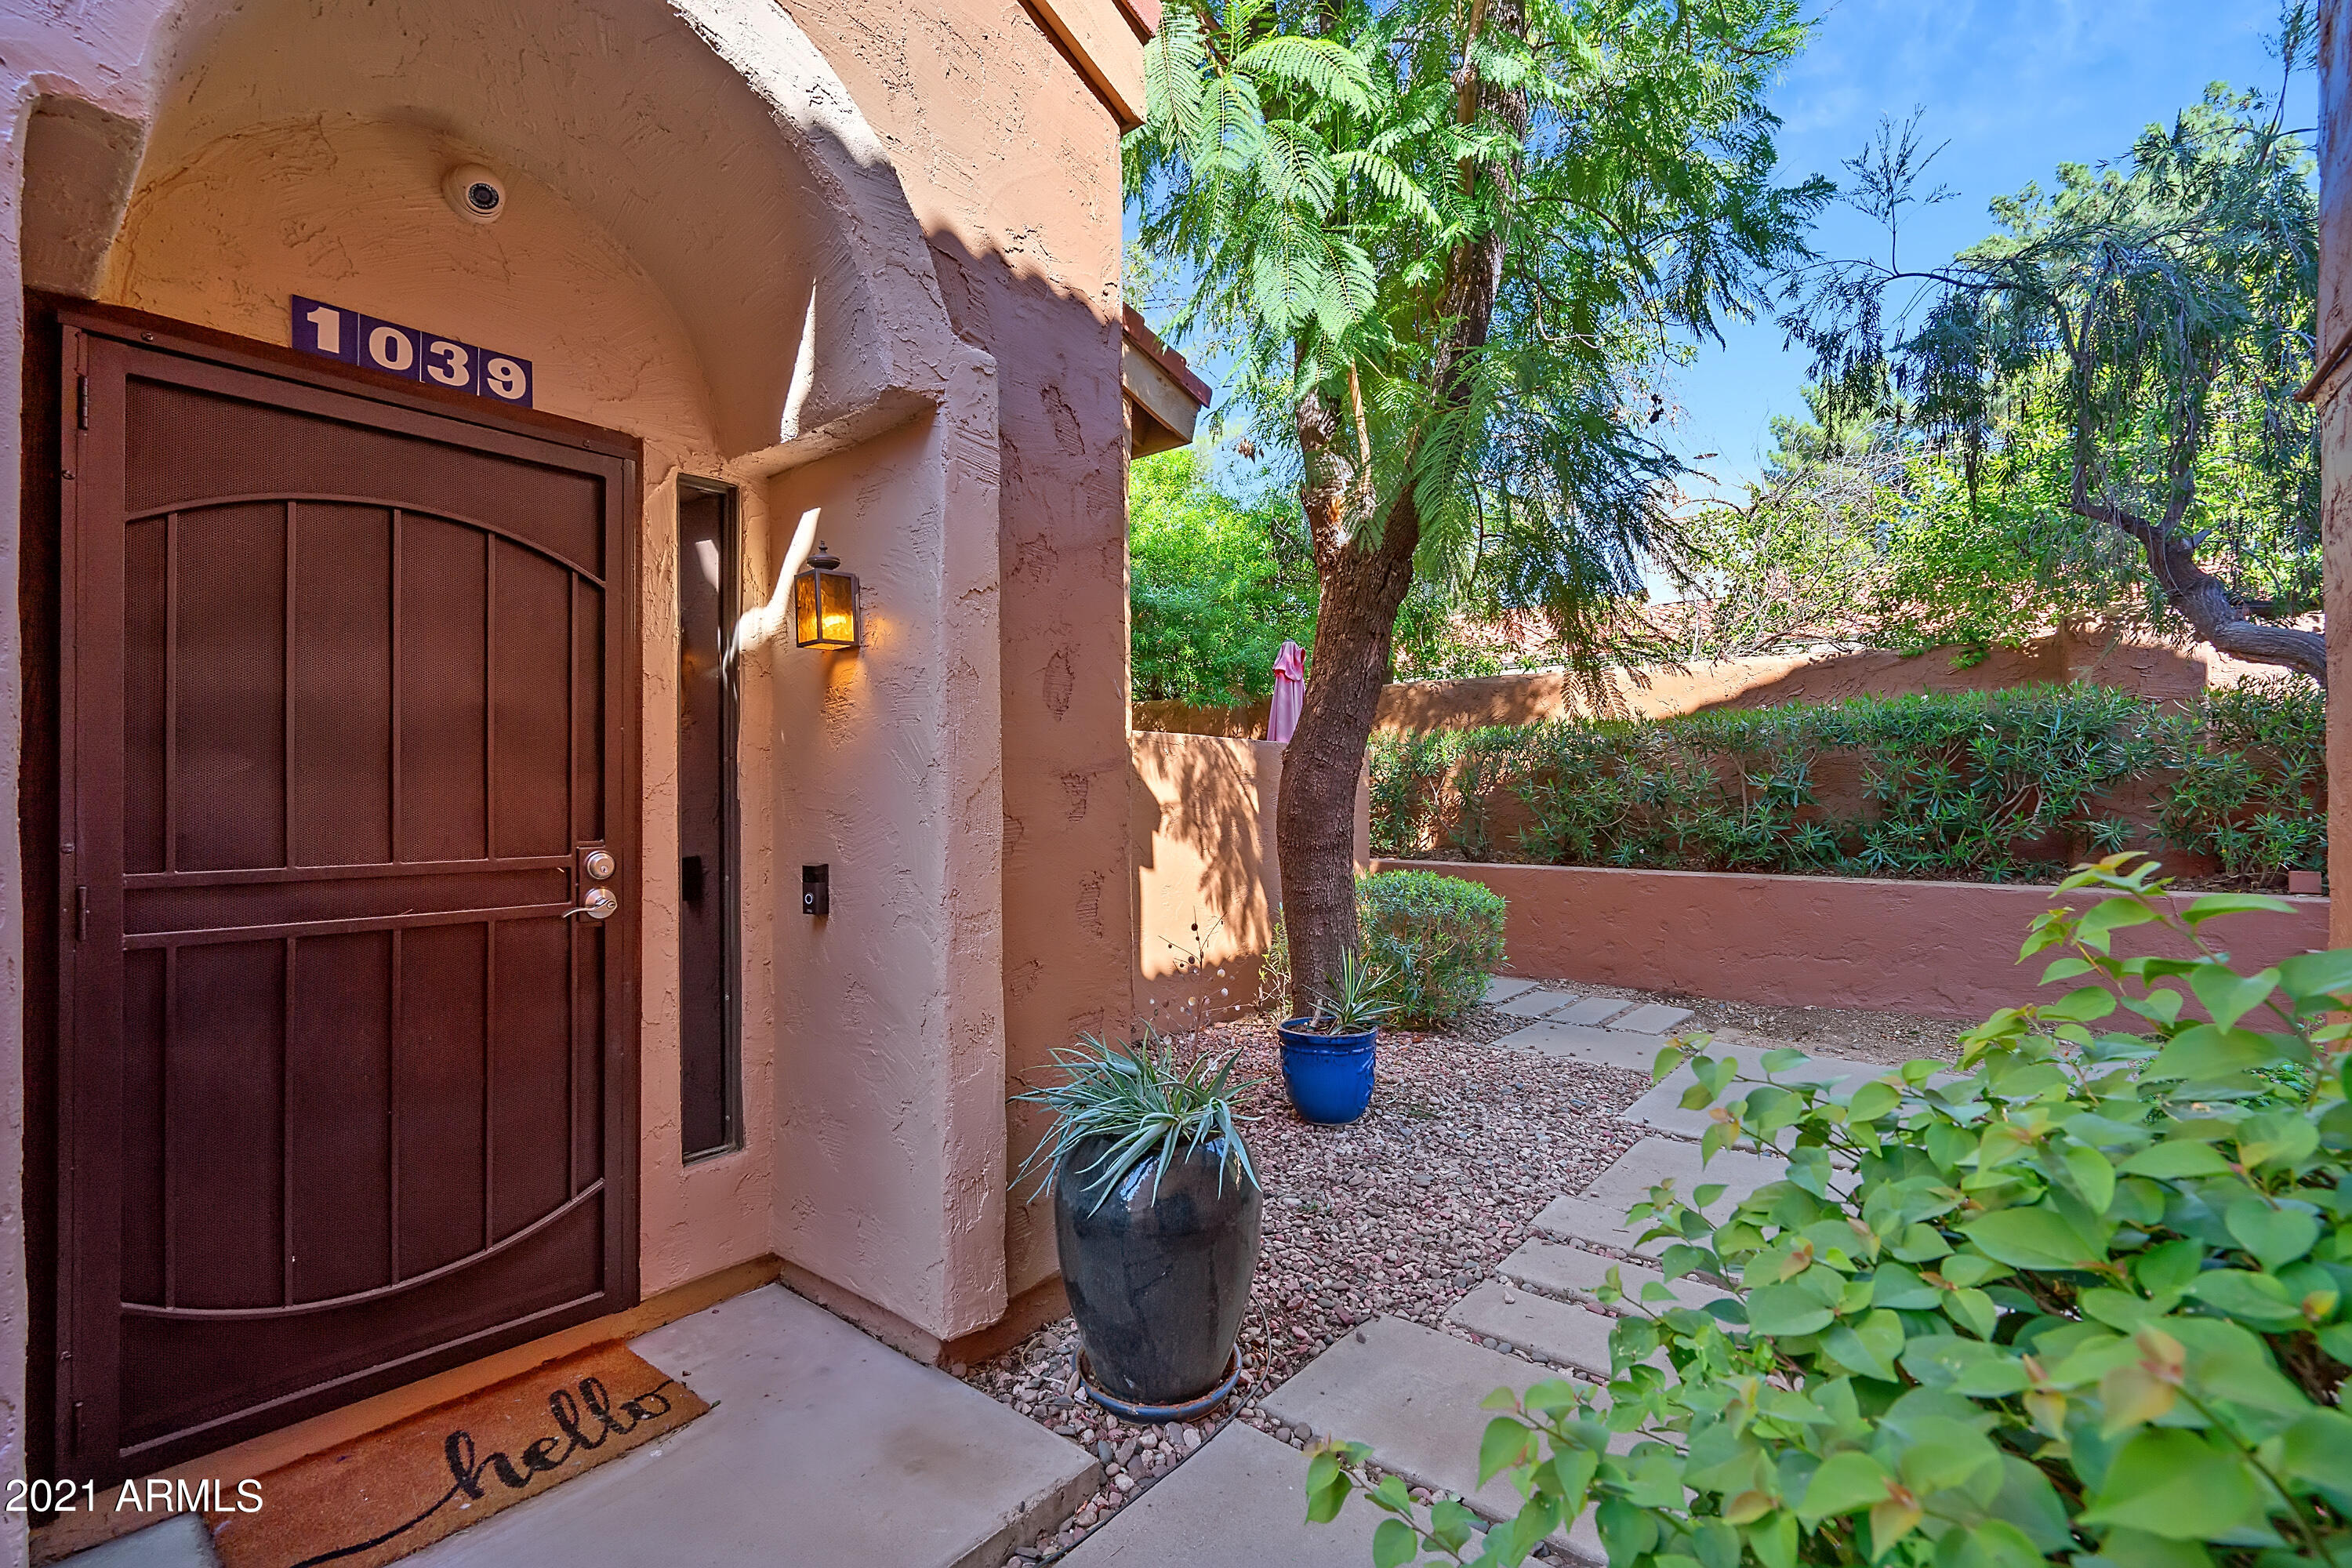 Welcome home to this stunning Scottsdale condo! Upon entering you'll find soaring ceilings, loads of light, and upgrades galore! Luxury vinyl flooring, upgraded counters, and new appliances are just a few! The open concept living space is perfect for entertaining, and there's even a private patio for dining alfresco. The bedrooms are generously sized, with plenty of space! Both bathrooms are resort like, you basically will never have to leave! Last but not least, you have a private two car garage, big enough to park two cars and have a good amount of storage! Schedule your showing today, this one won't last!